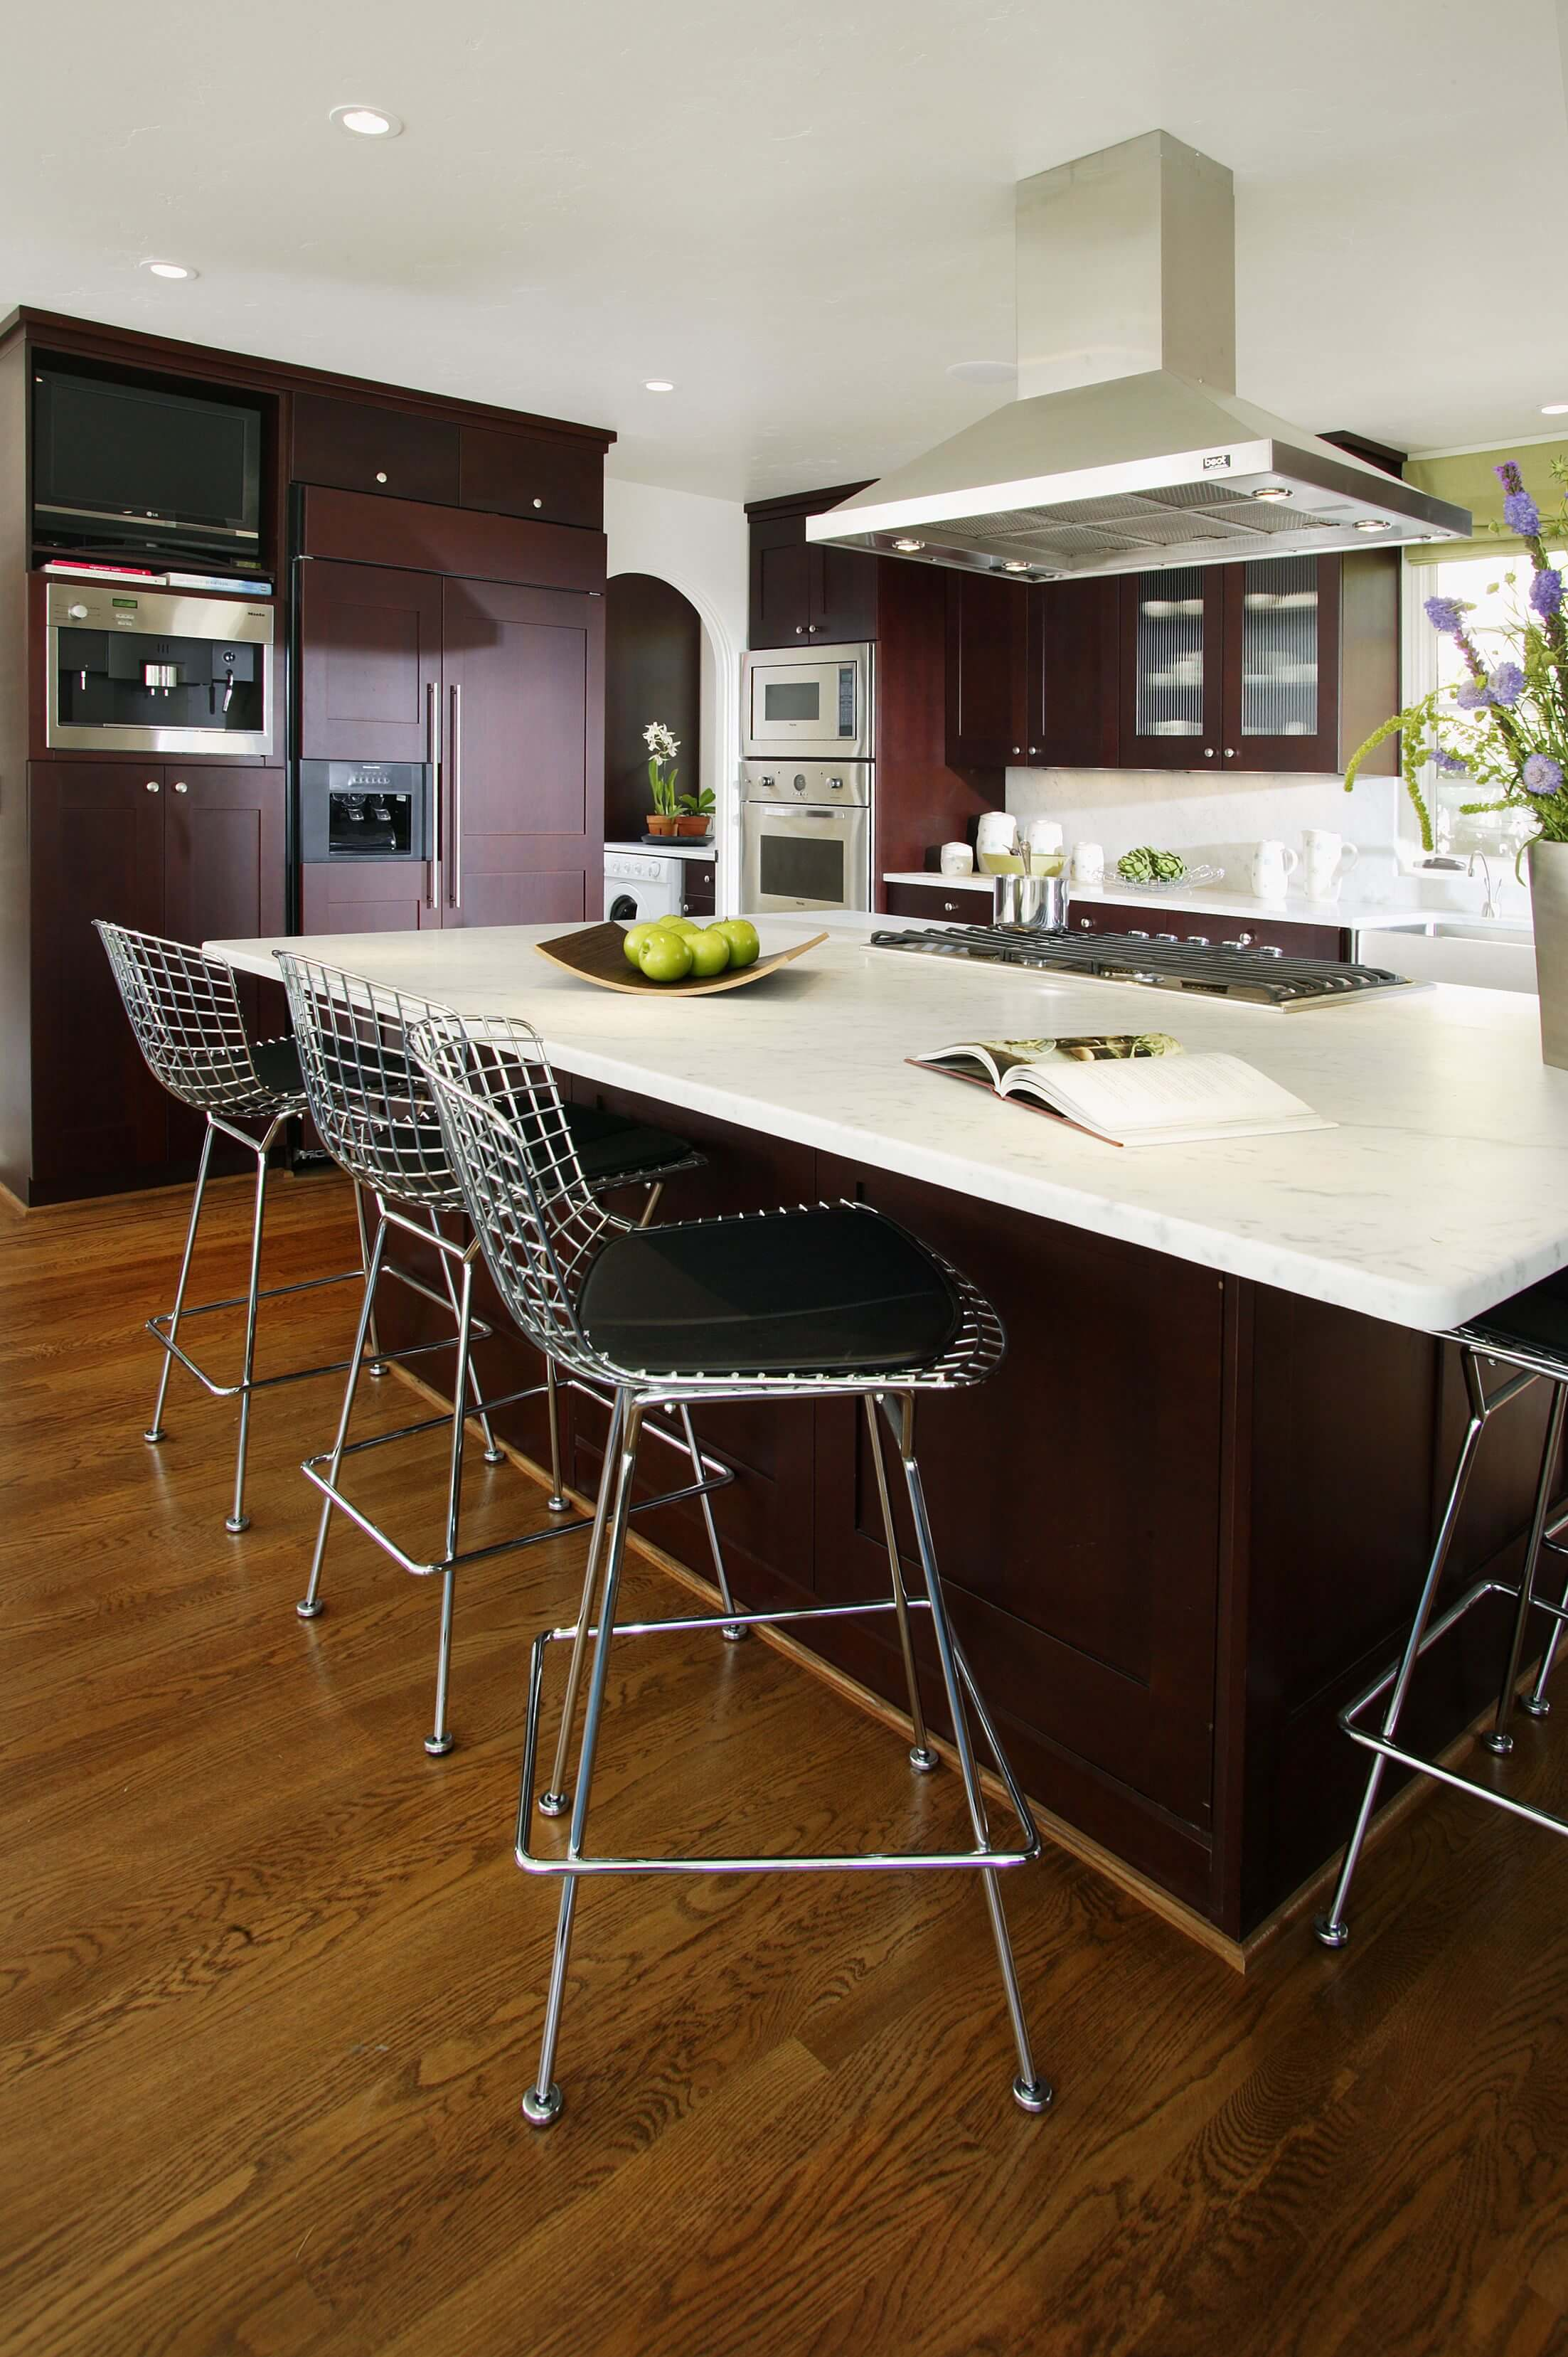 High Contrast Look In This Kitchen Courtesy Of Dark Stained Cabinetry White Countertops